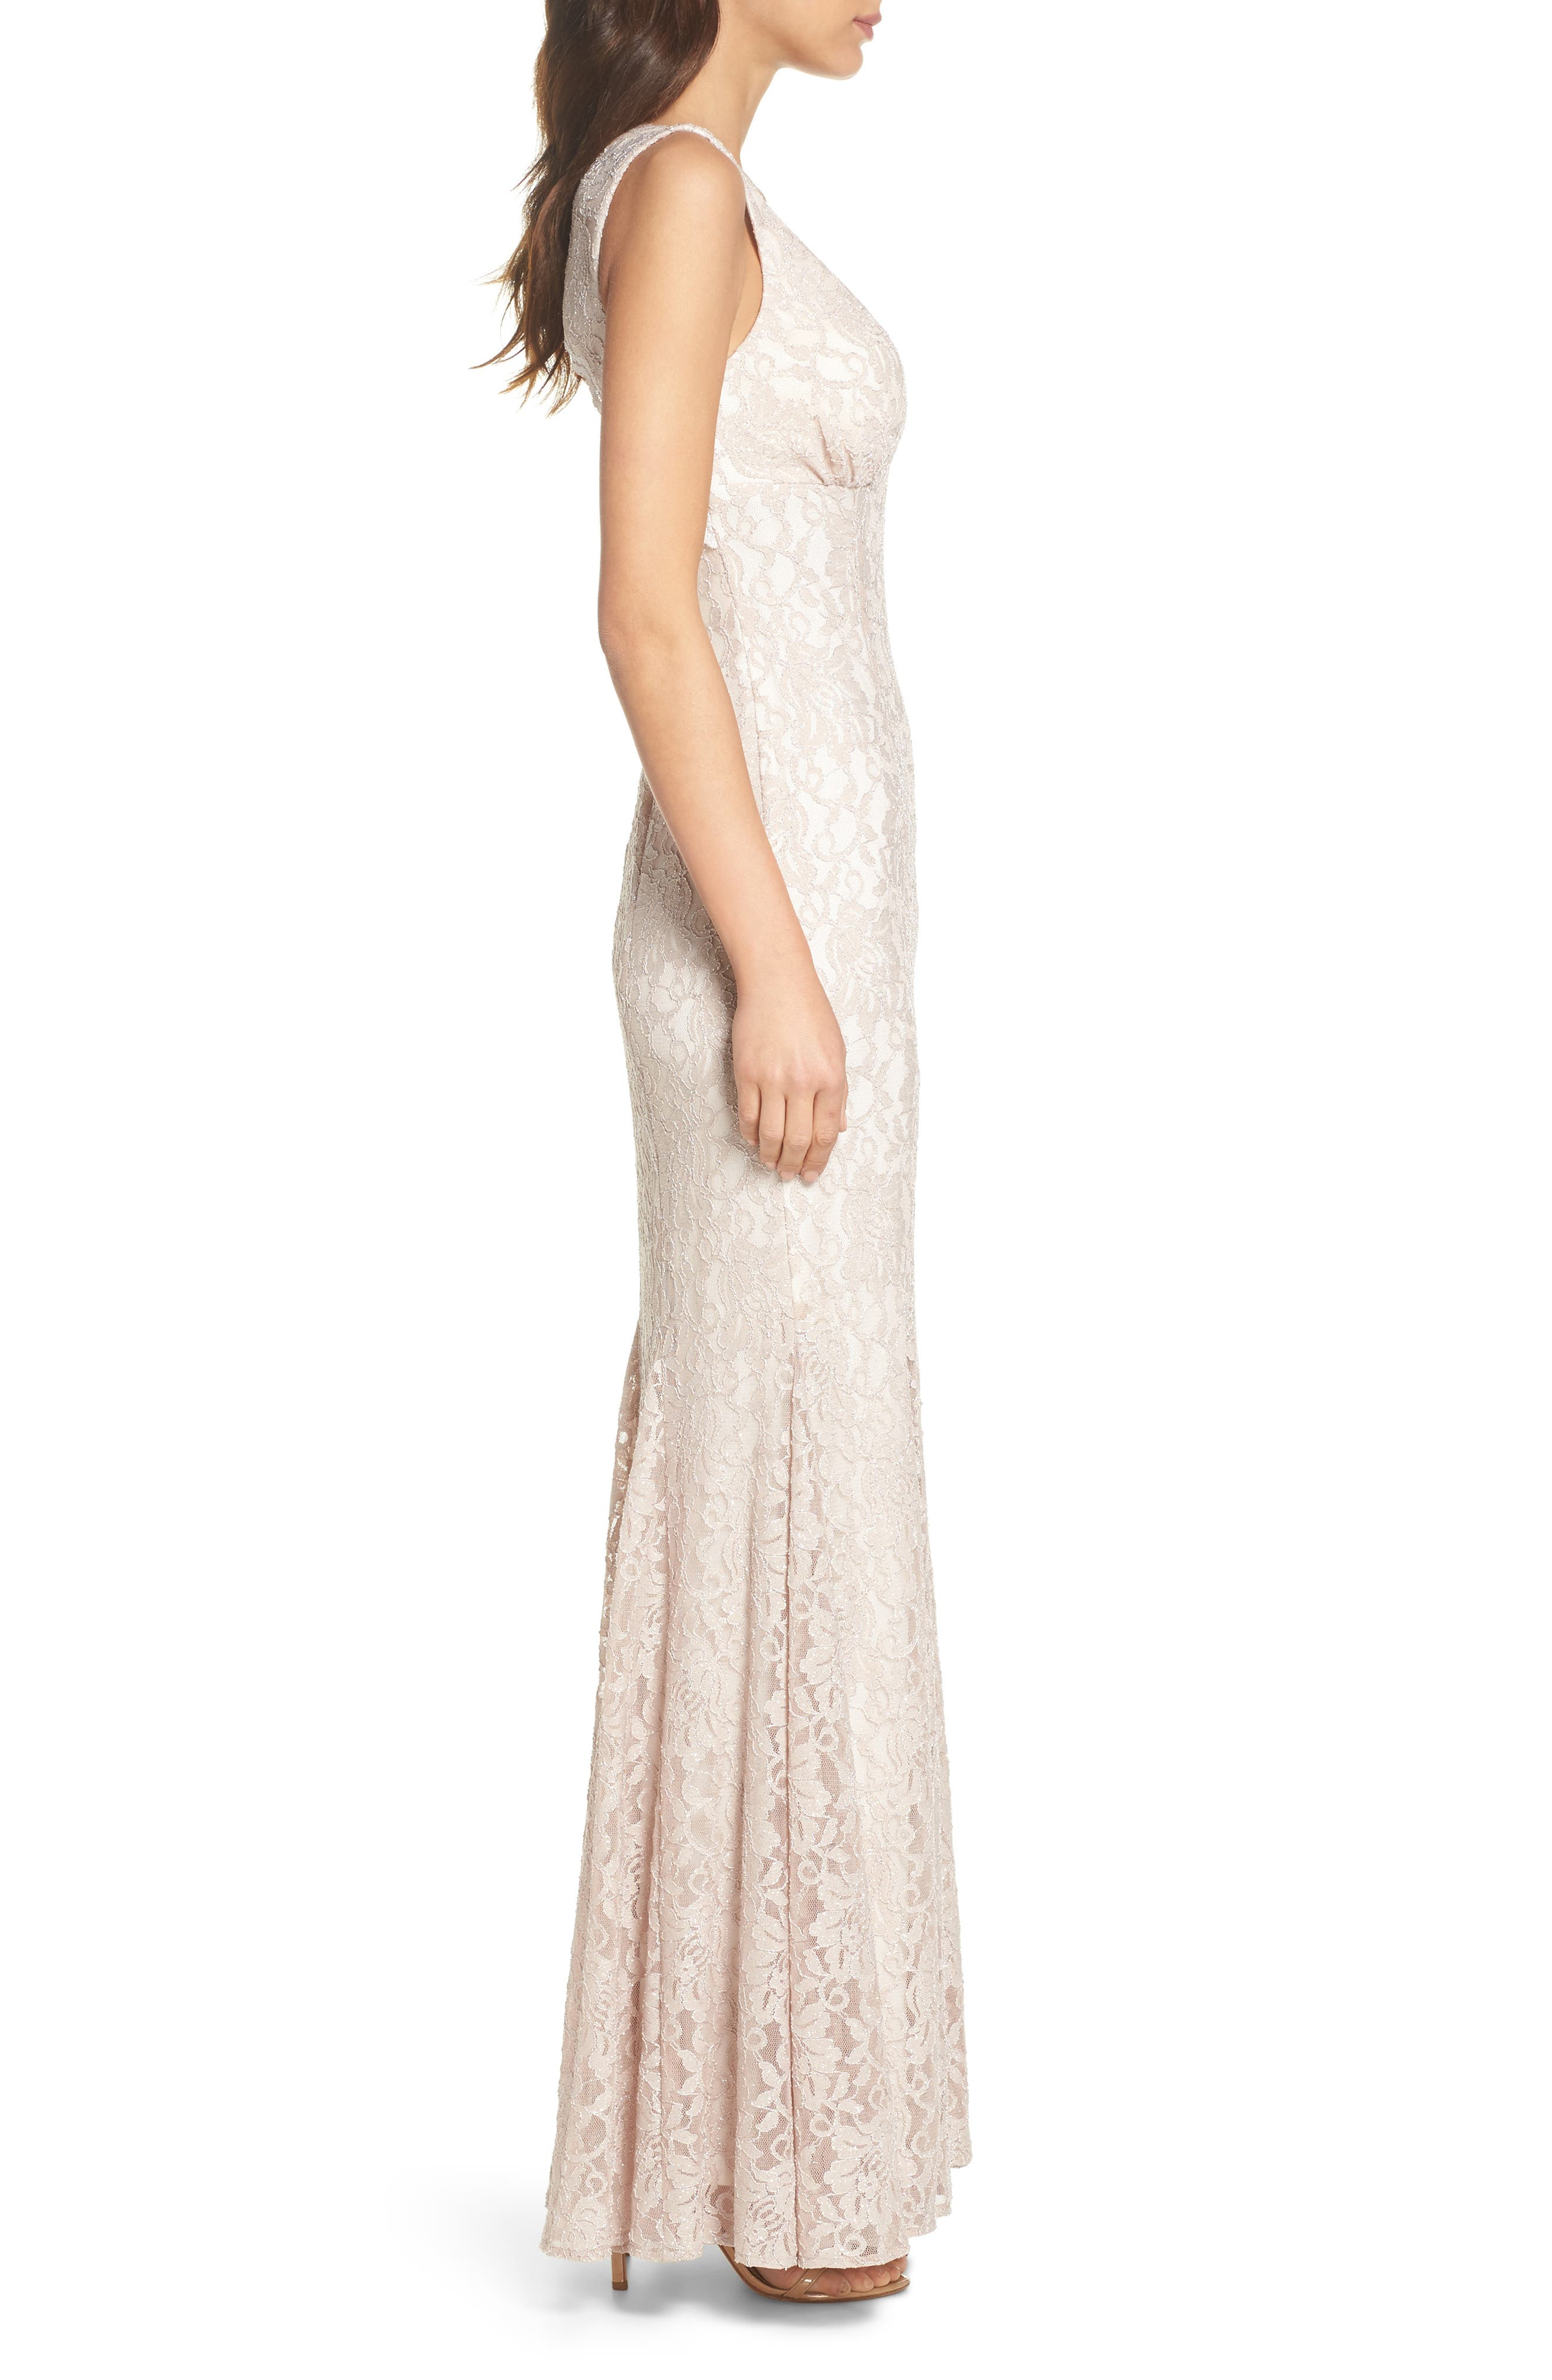 Glitter Lace Trumpet Dress,                             Alternate thumbnail 3, color,                             CHAMPAGNE / IVORY